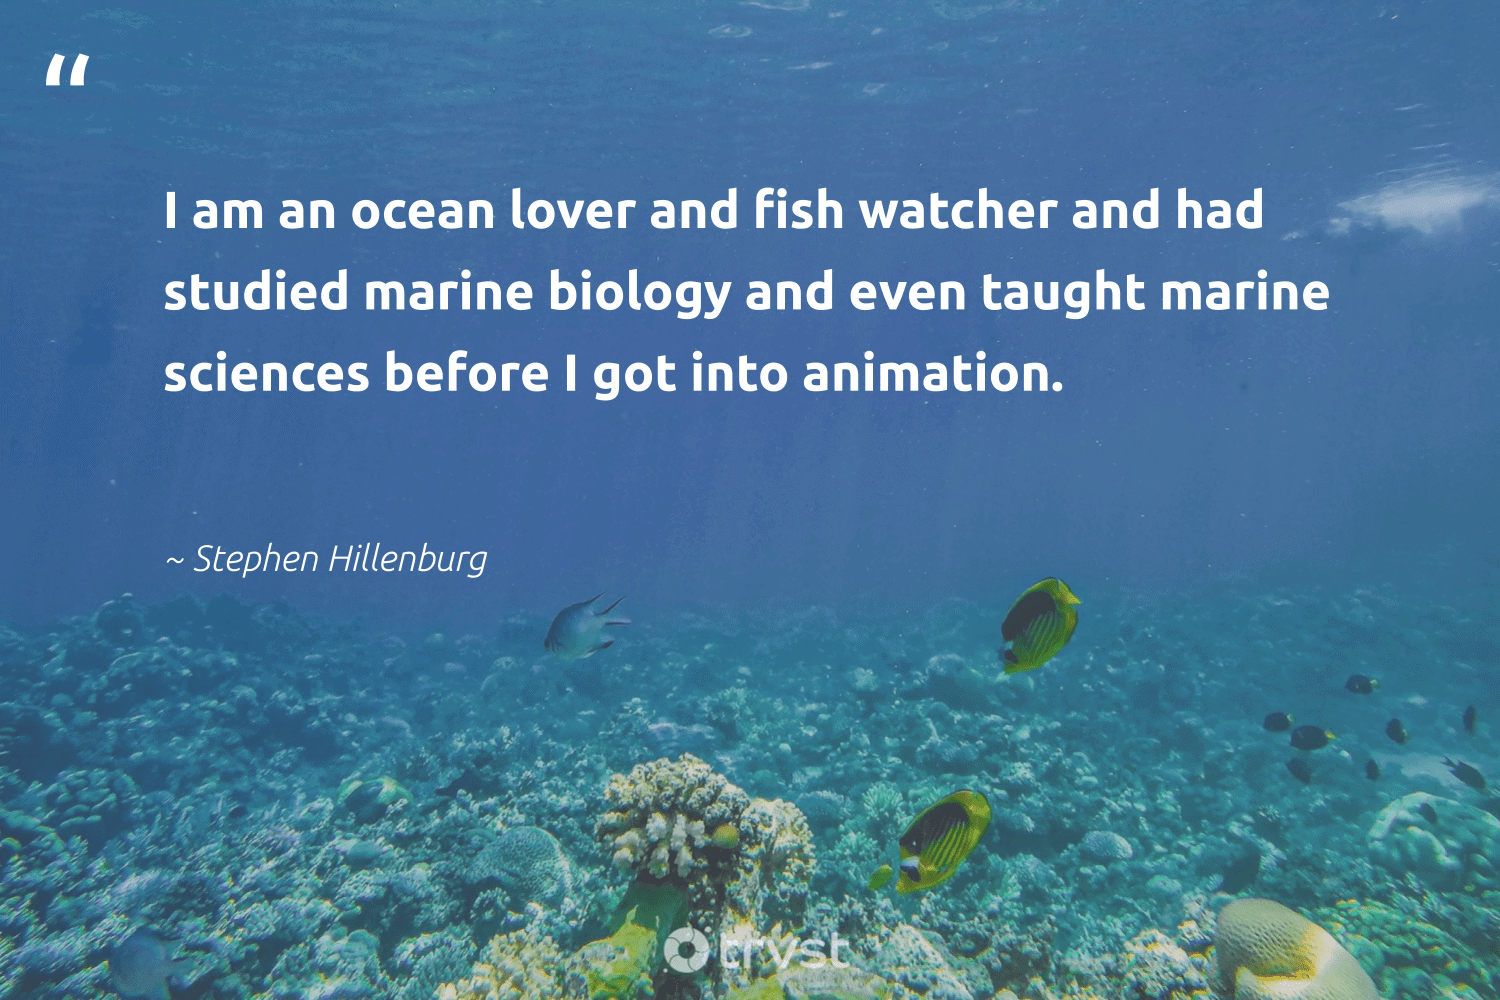 """""""I am an ocean lover and fish watcher and had studied marine biology and even taught marine sciences before I got into animation.""""  - Stephen Hillenburg #trvst #quotes #ocean #biology #fish #marine #shellfish #oceanpollution #conservation #nature #changetheworld #travel"""